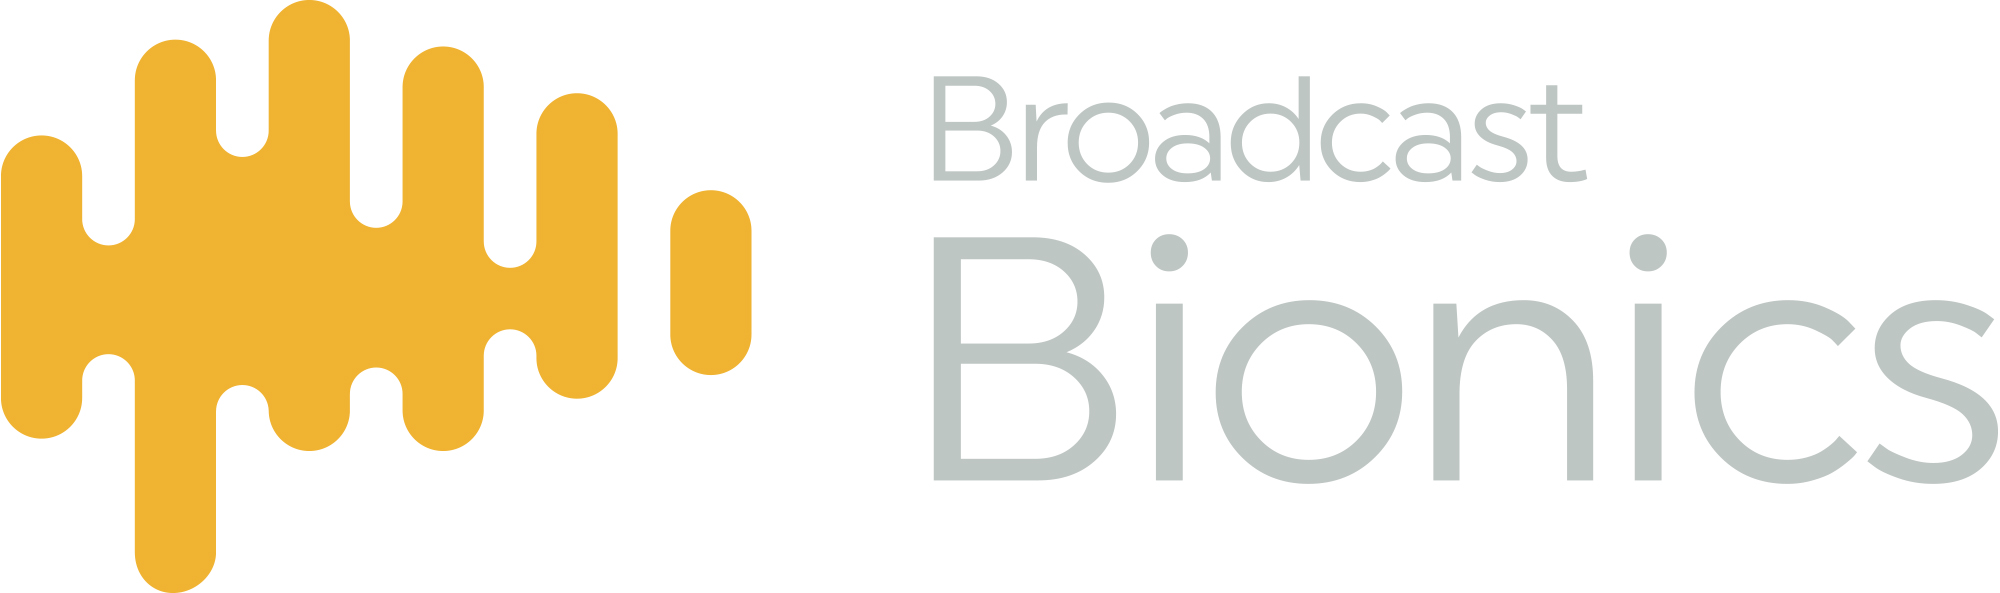 Broadcast Bionics logo - ocre waveform splash with grey text